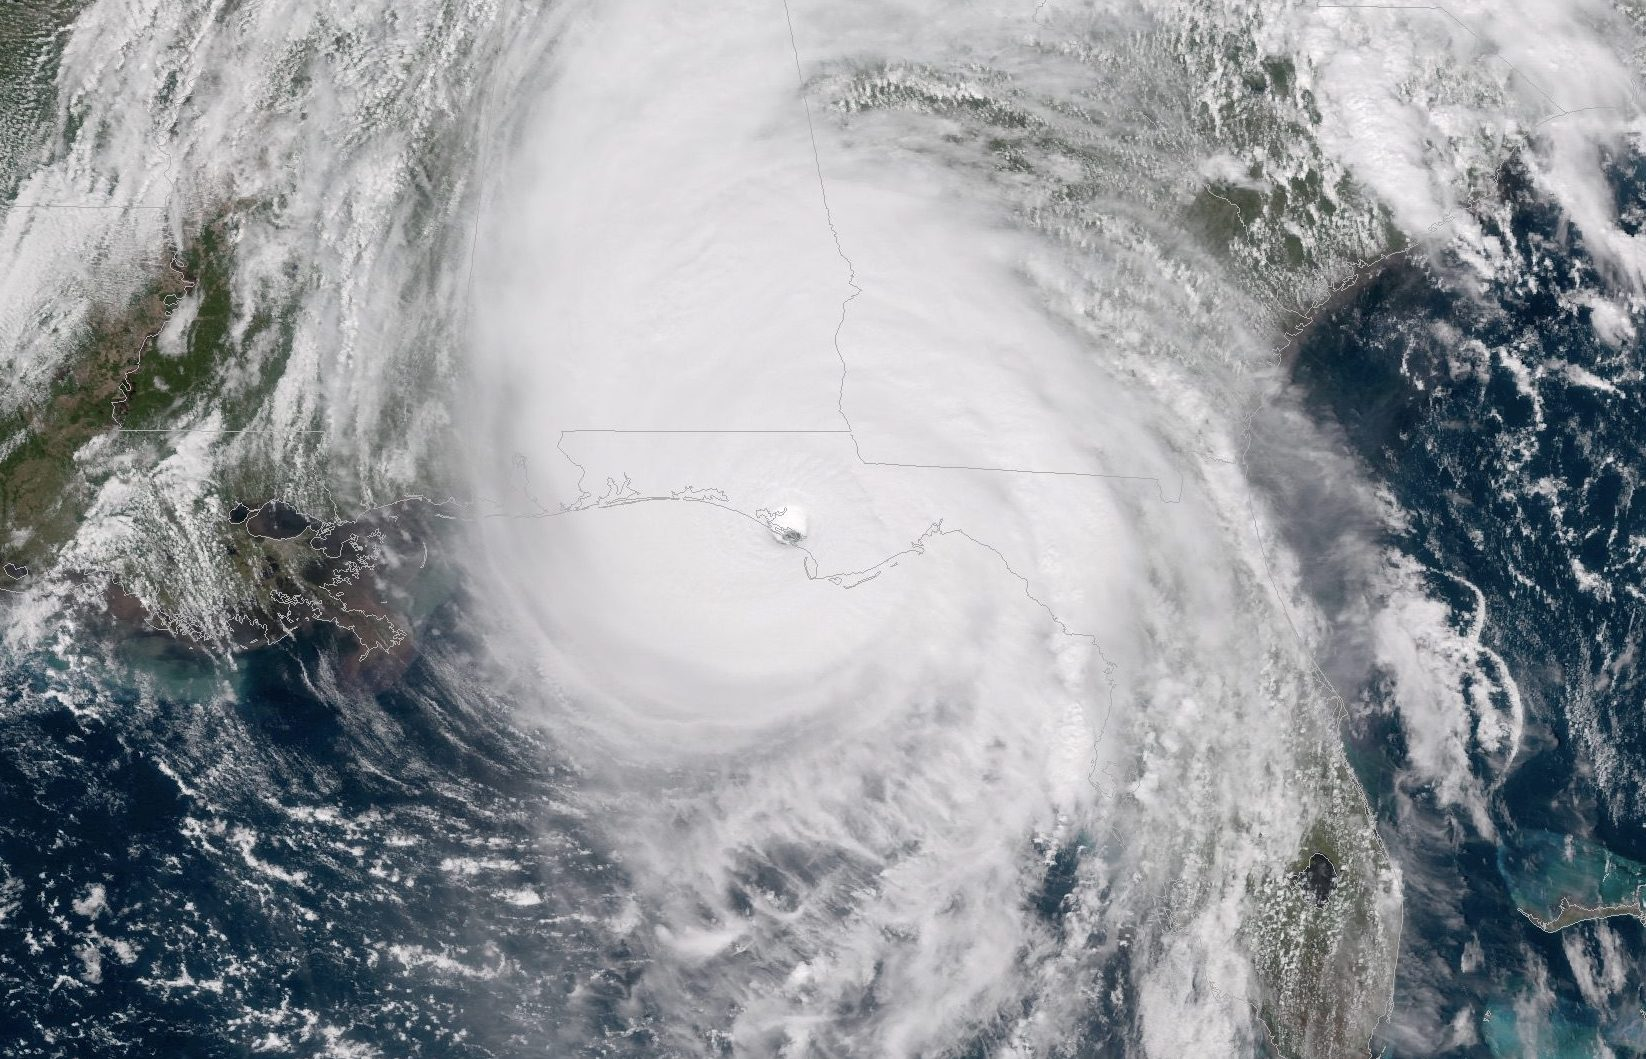 Apple will provide assistance to the victims of hurricane Michael